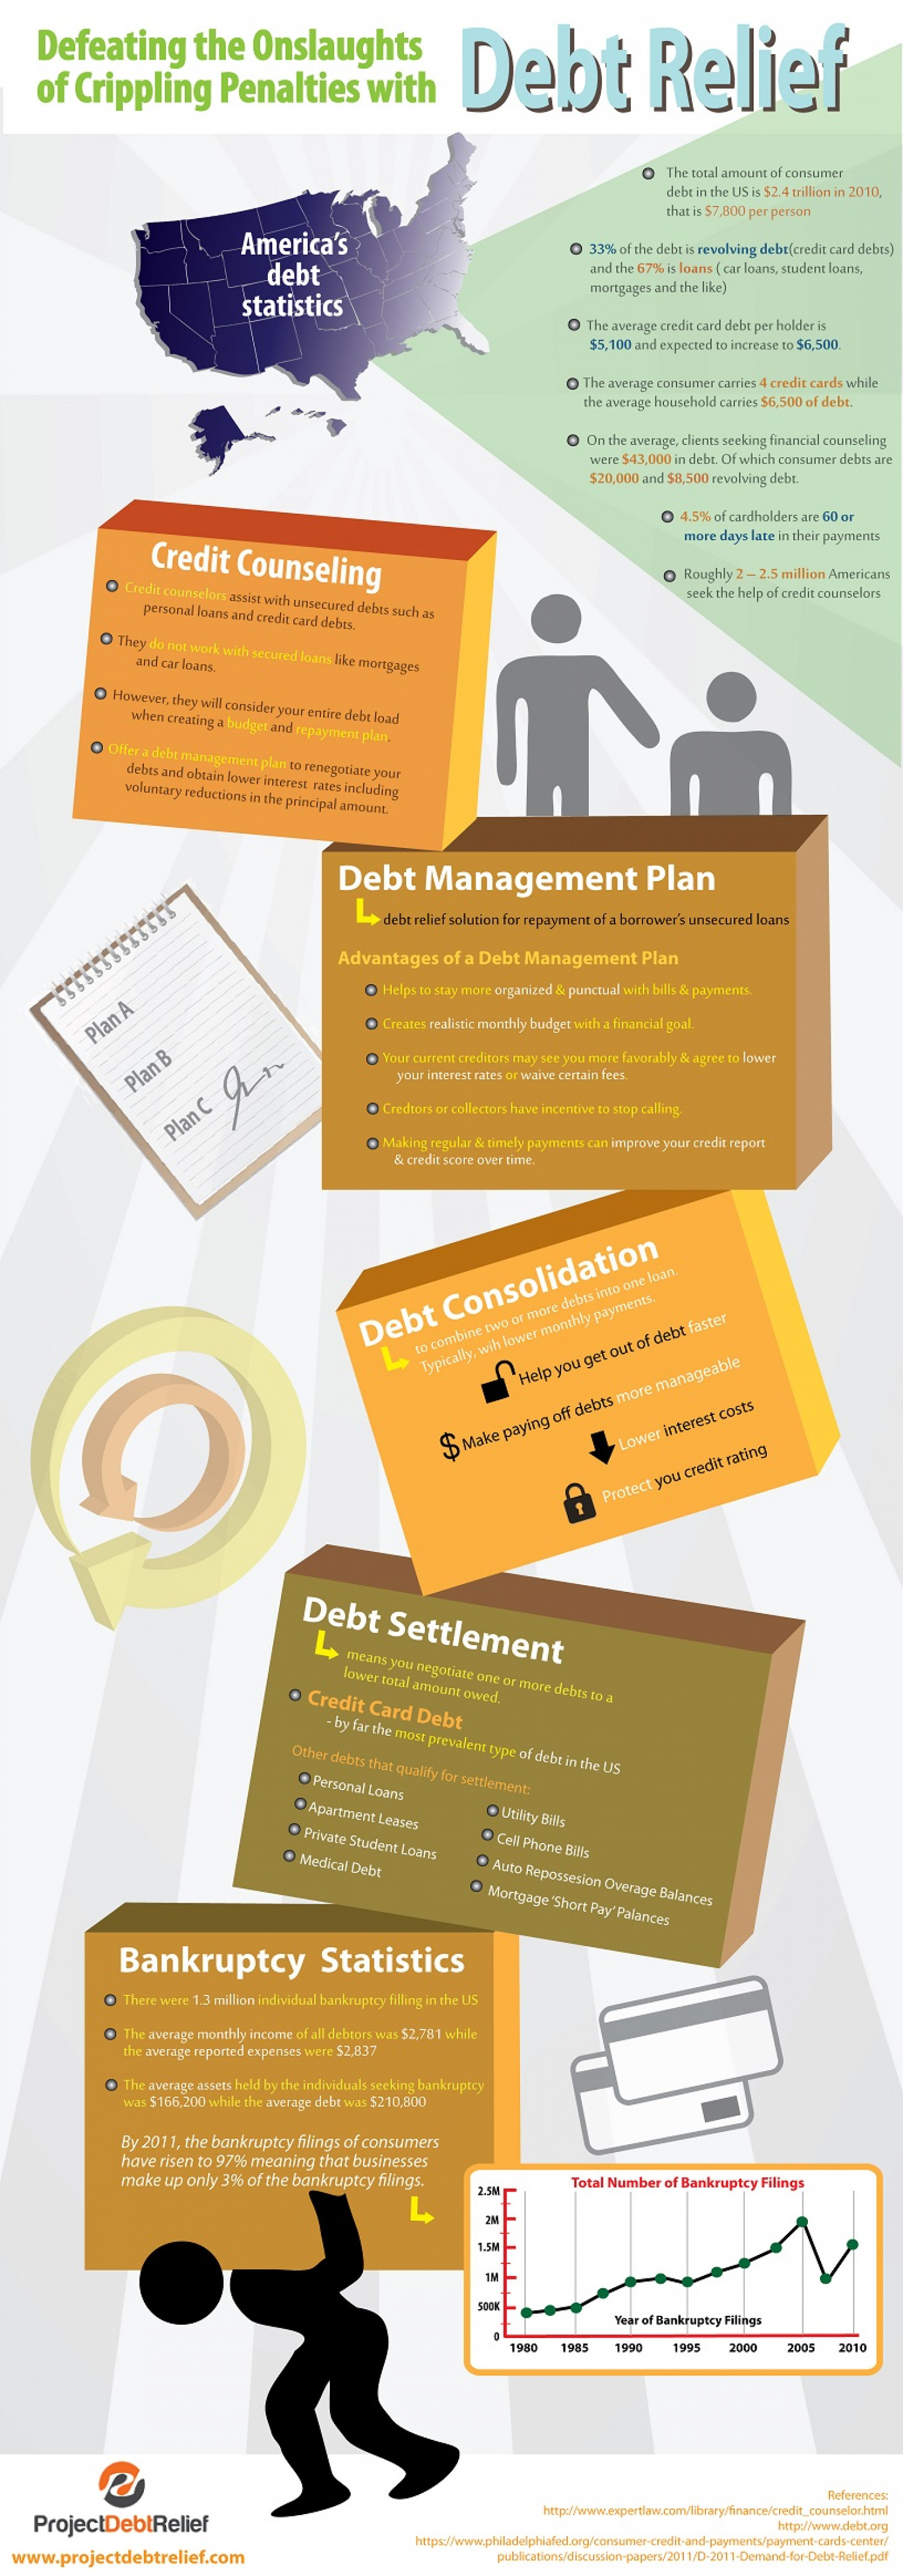 Defeating the Onslaughts of Crippling Penalties with Debt Relief Infographic